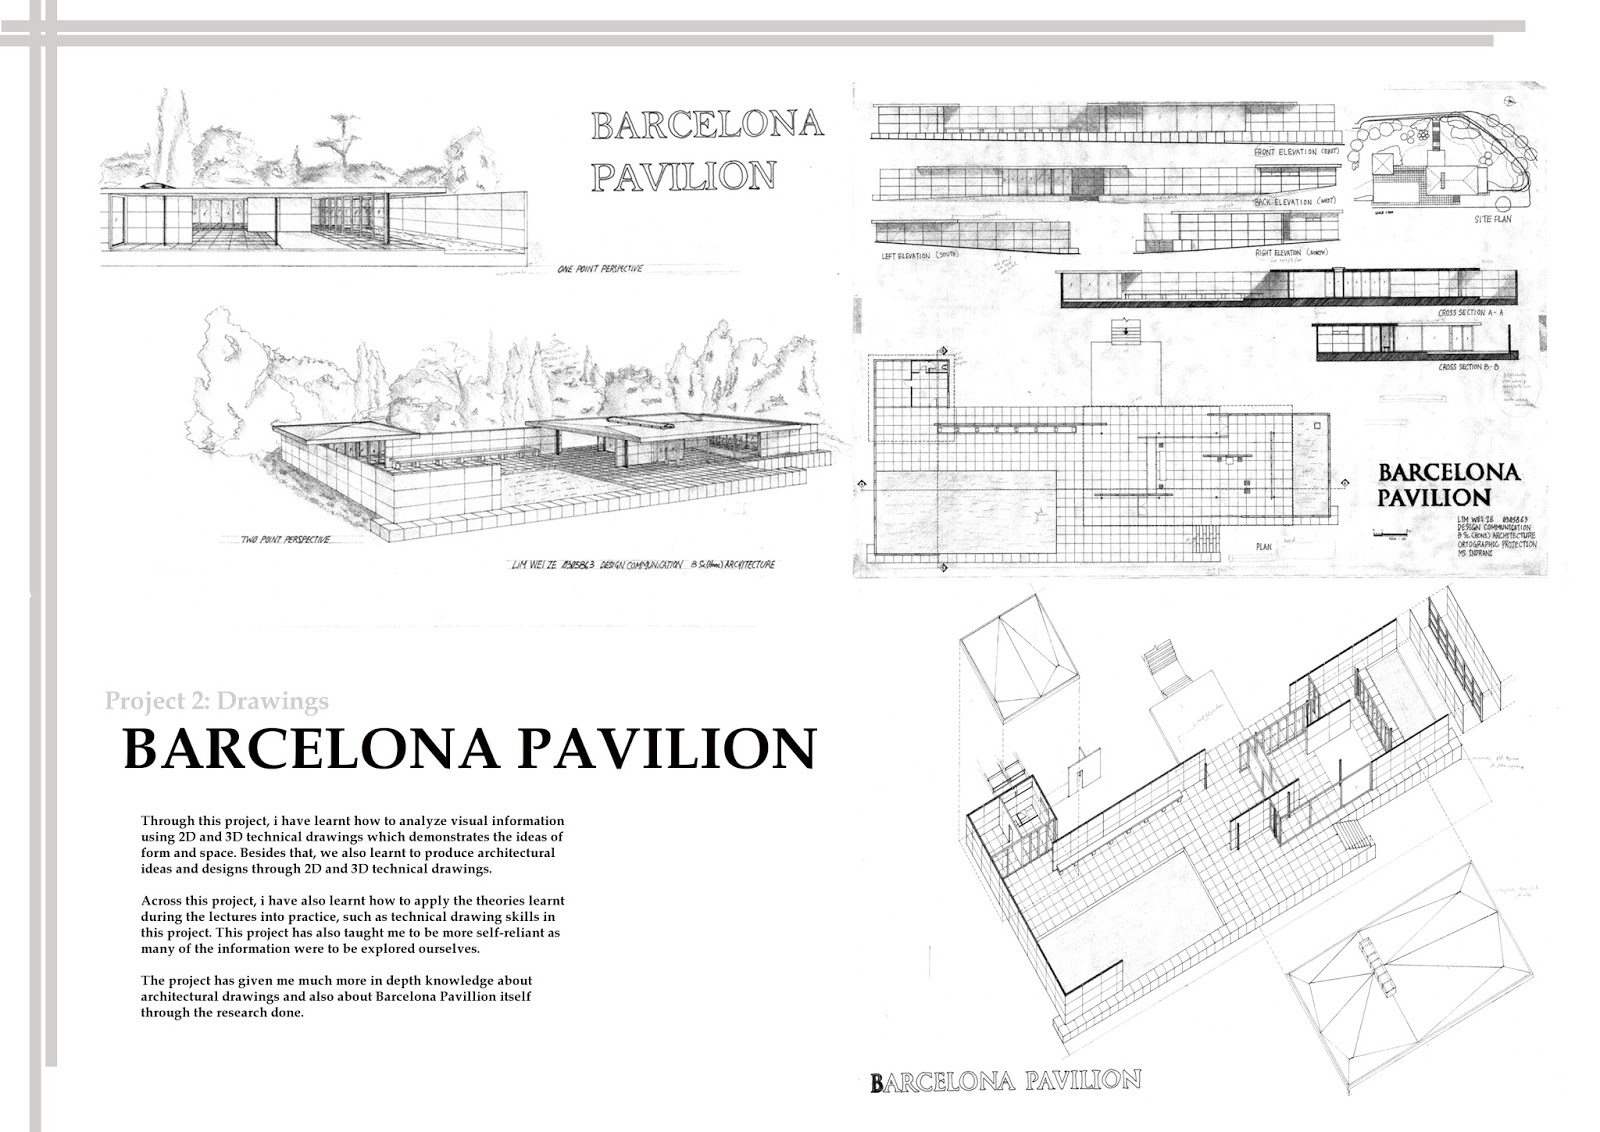 Barcelona pavilion section drawing - Barcelona Pavilion Section Drawing 20